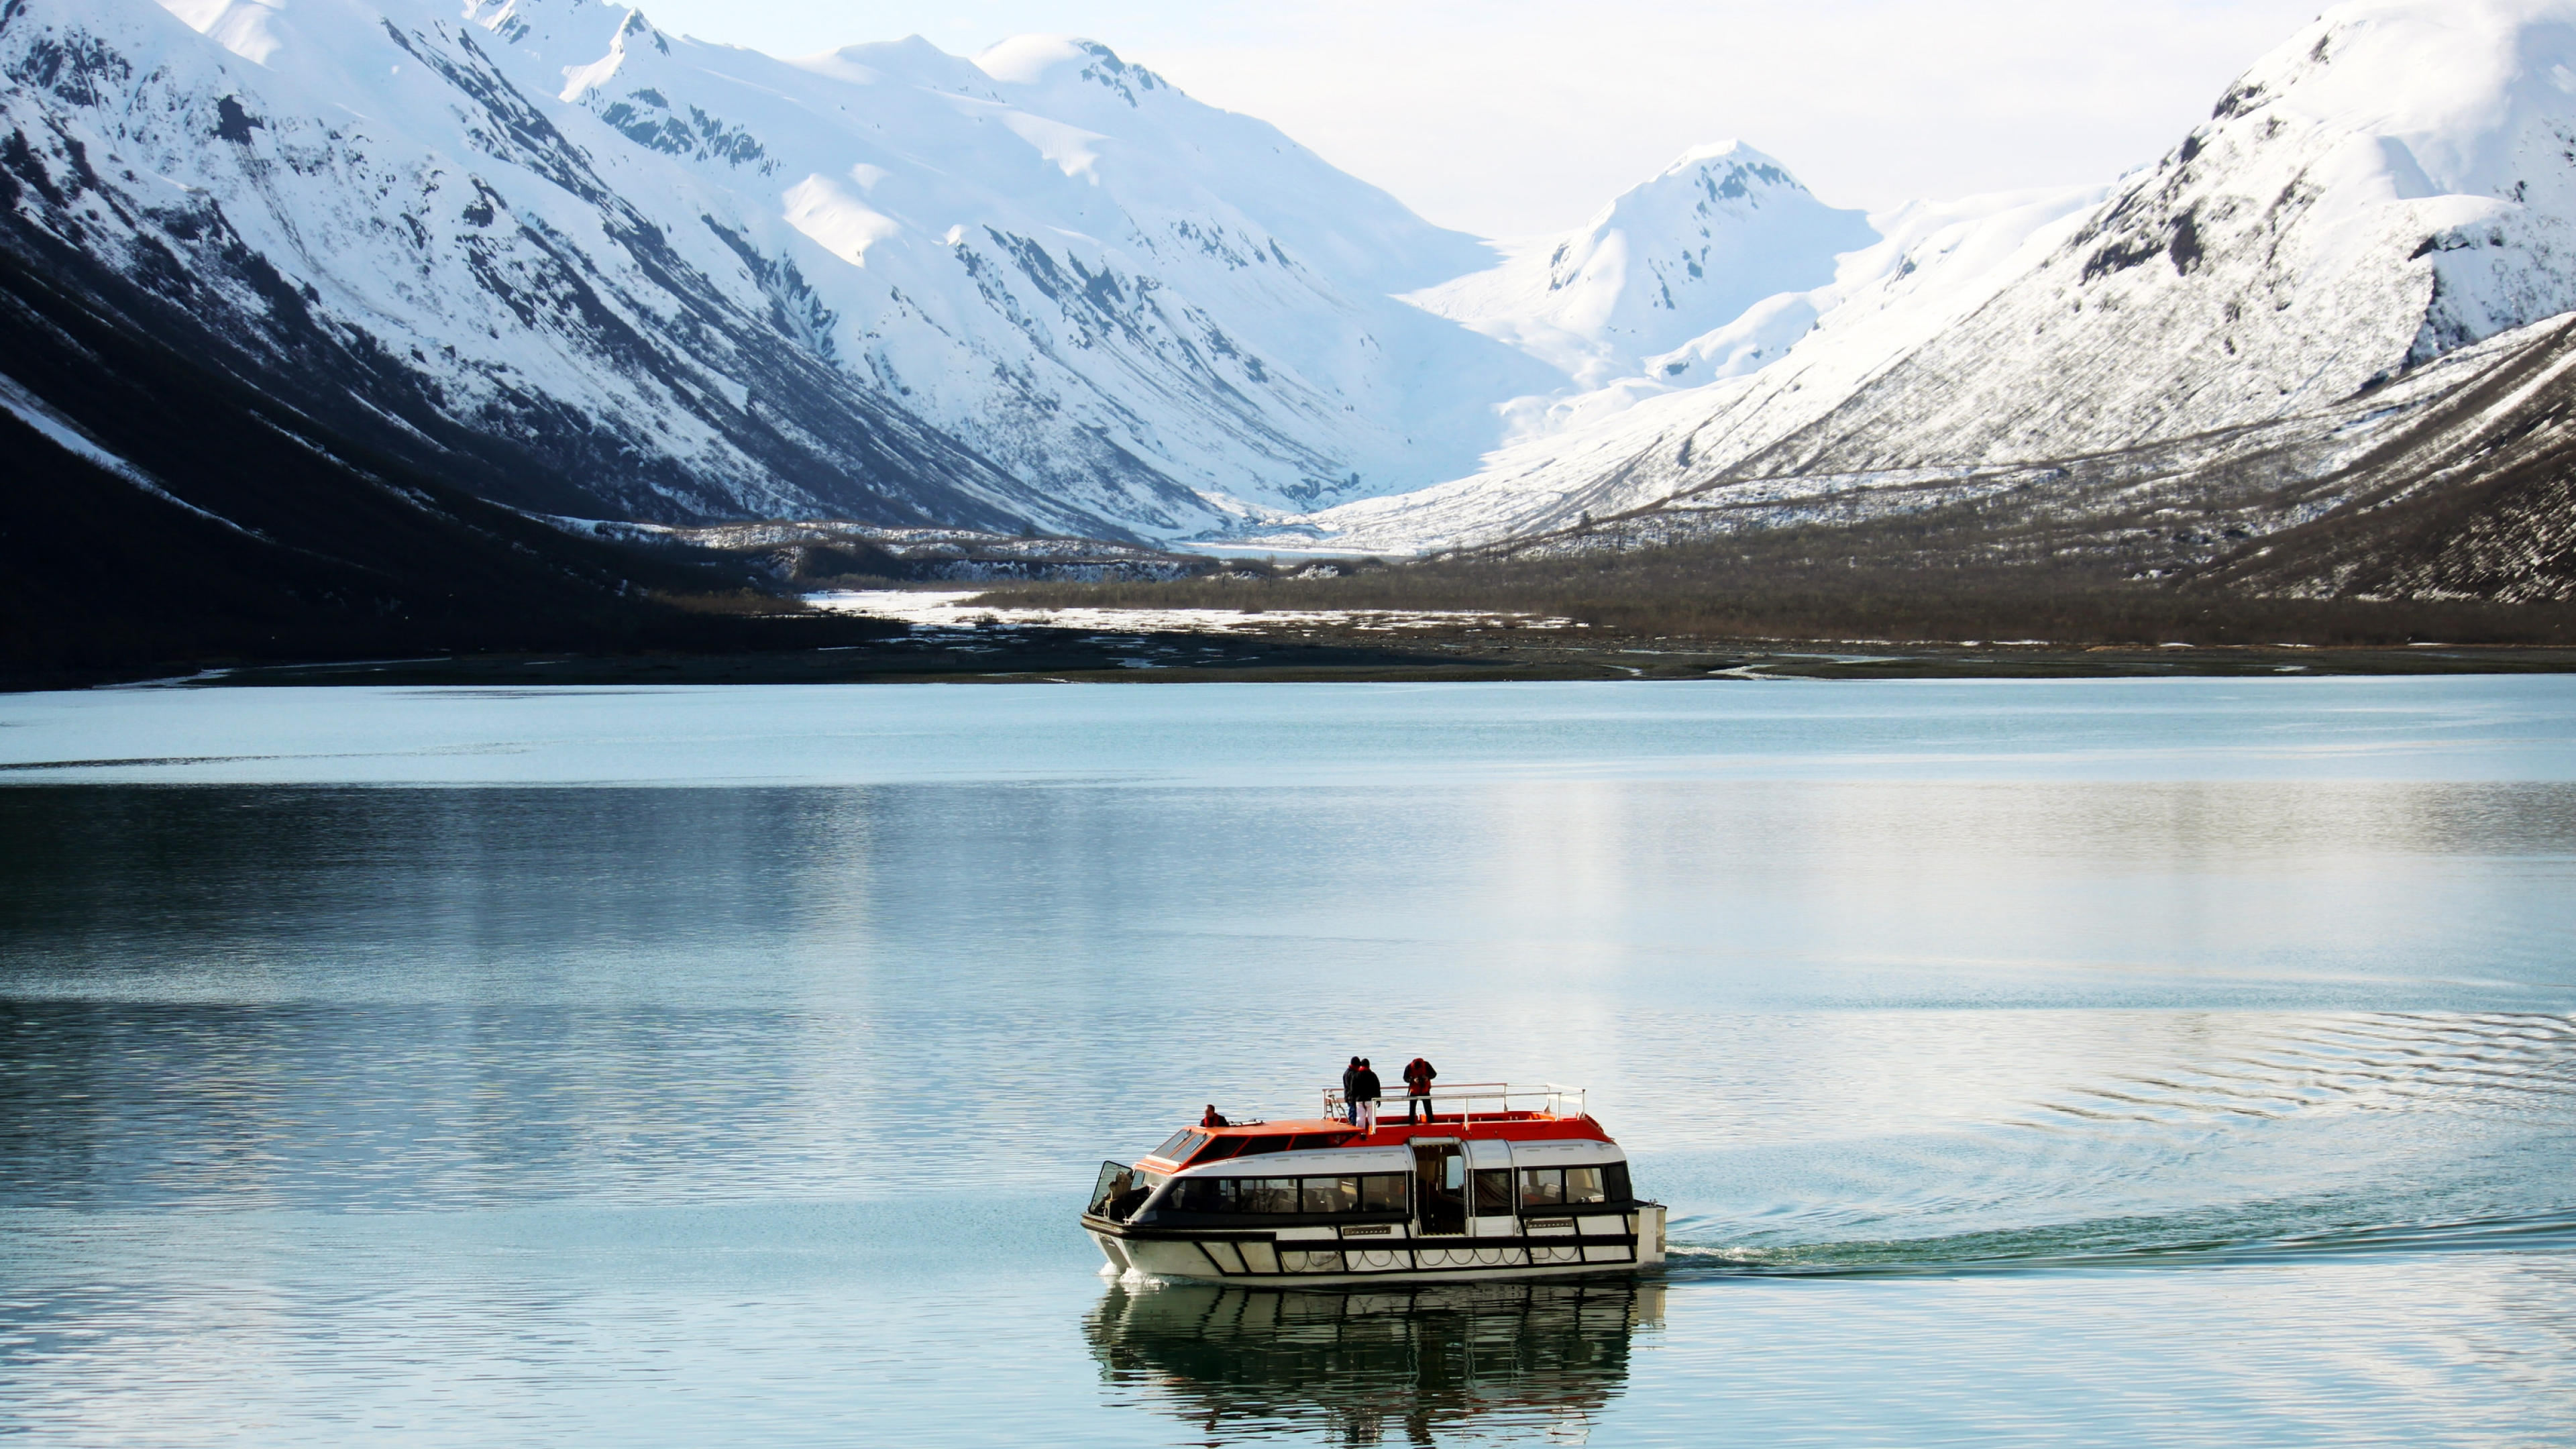 Tour boat in the bay in front of snow and glacier-covered mountains at Glacier Bay National Park & Preserve